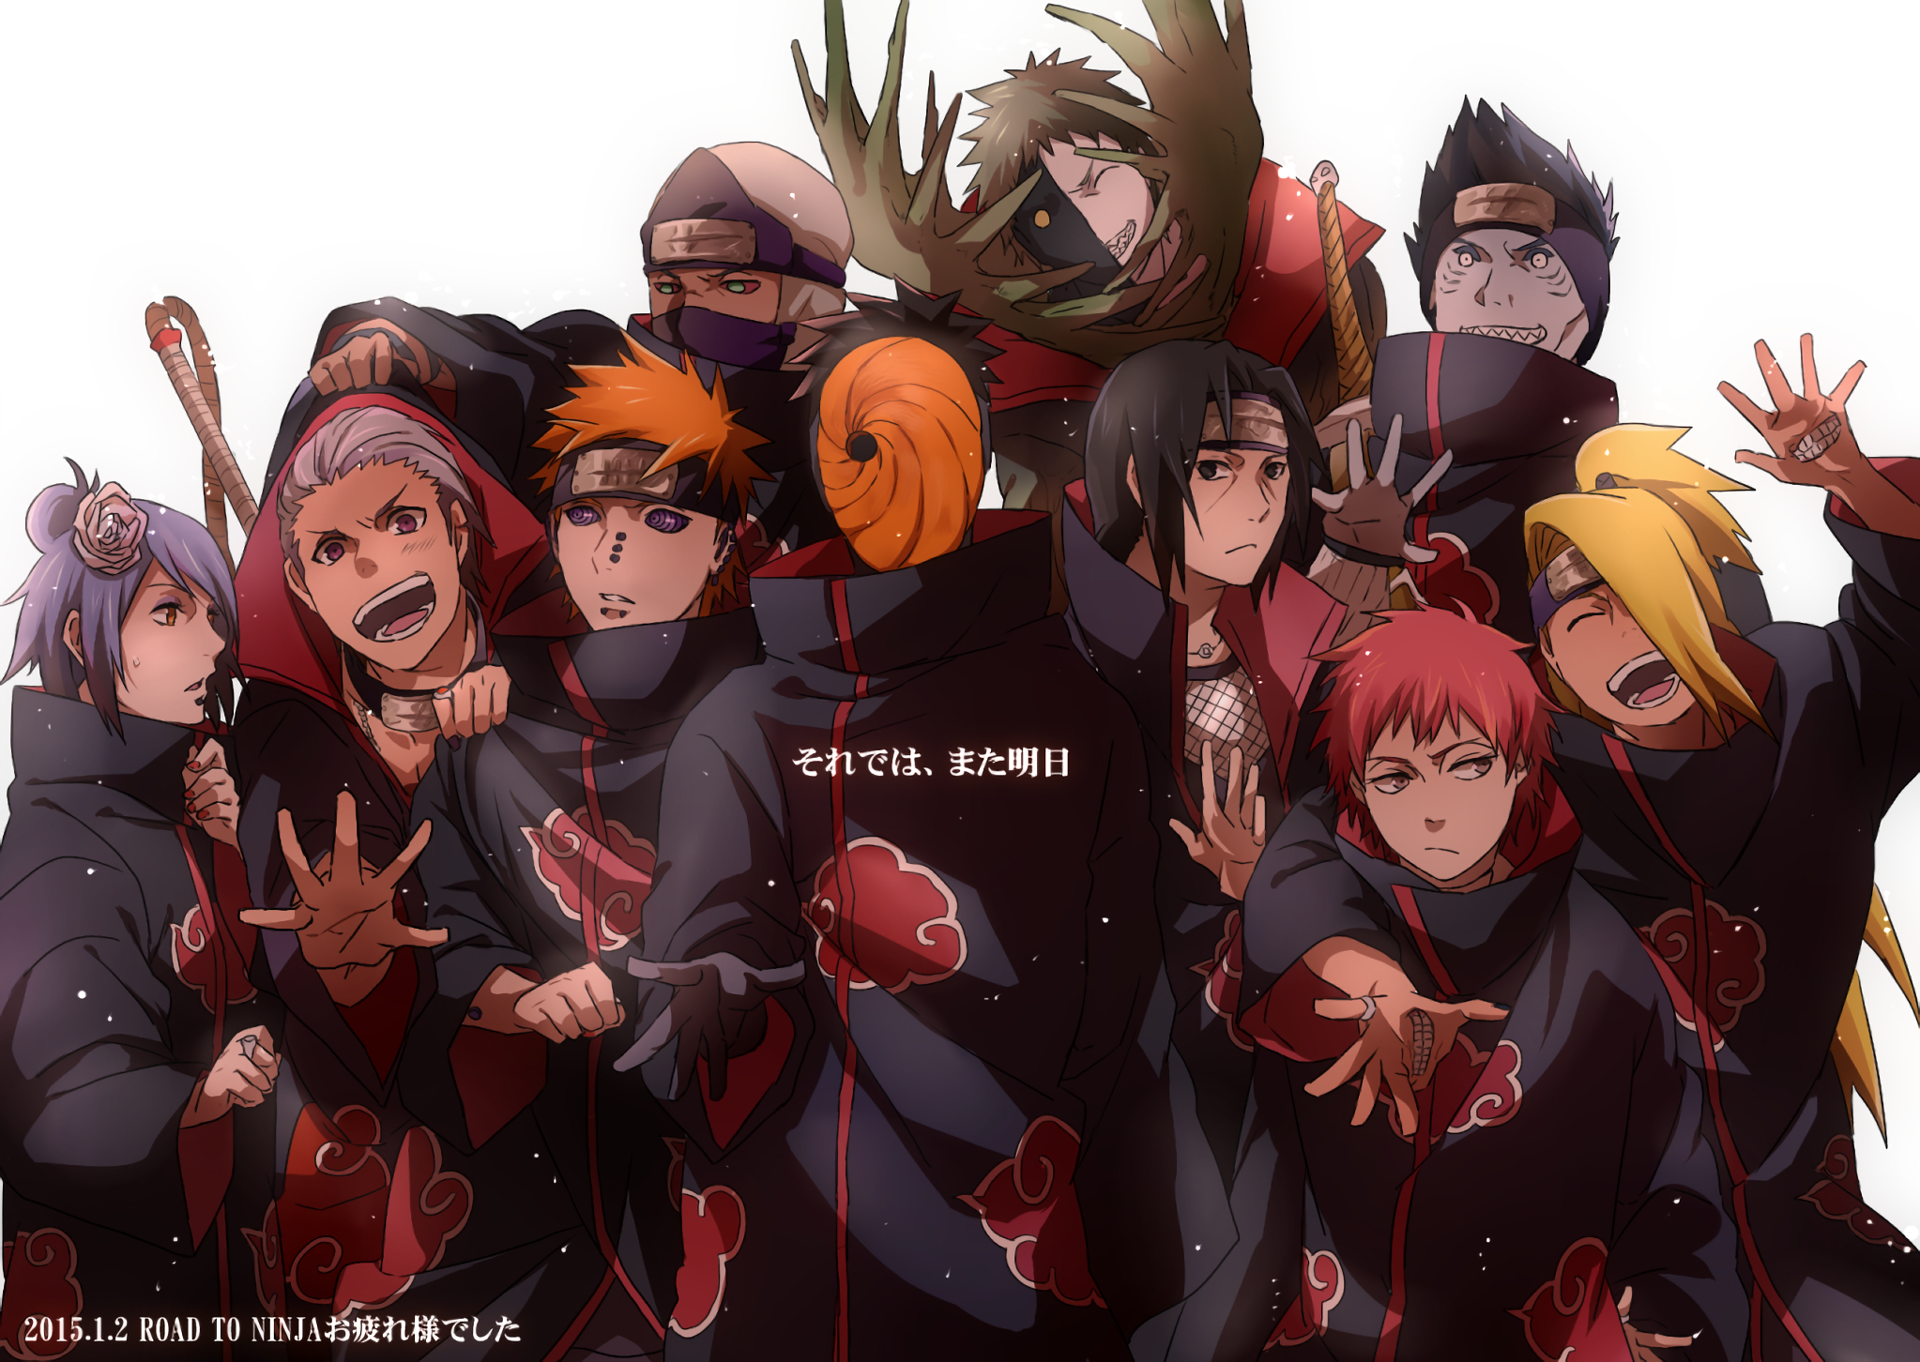 Simple Wallpaper Naruto Group - thumb-1920-727029  Collection_361213.png